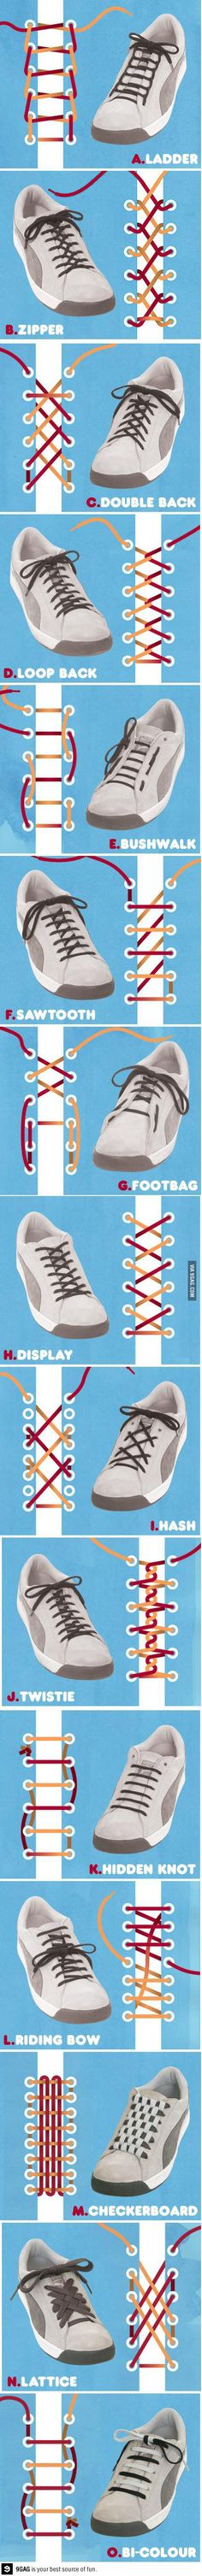 The best DIY projects & DIY ideas and tutorials: sewing, paper craft, DIY. Ideas About DIY Life Hacks & Crafts 2017 / 2018 Who knew there were so many different ways to tie your shoes? Ways To Tie Shoelaces, Your Shoes, Good To Know, Just In Case, Helpful Hints, Life Hacks, Creations, Cool Stuff, My Style